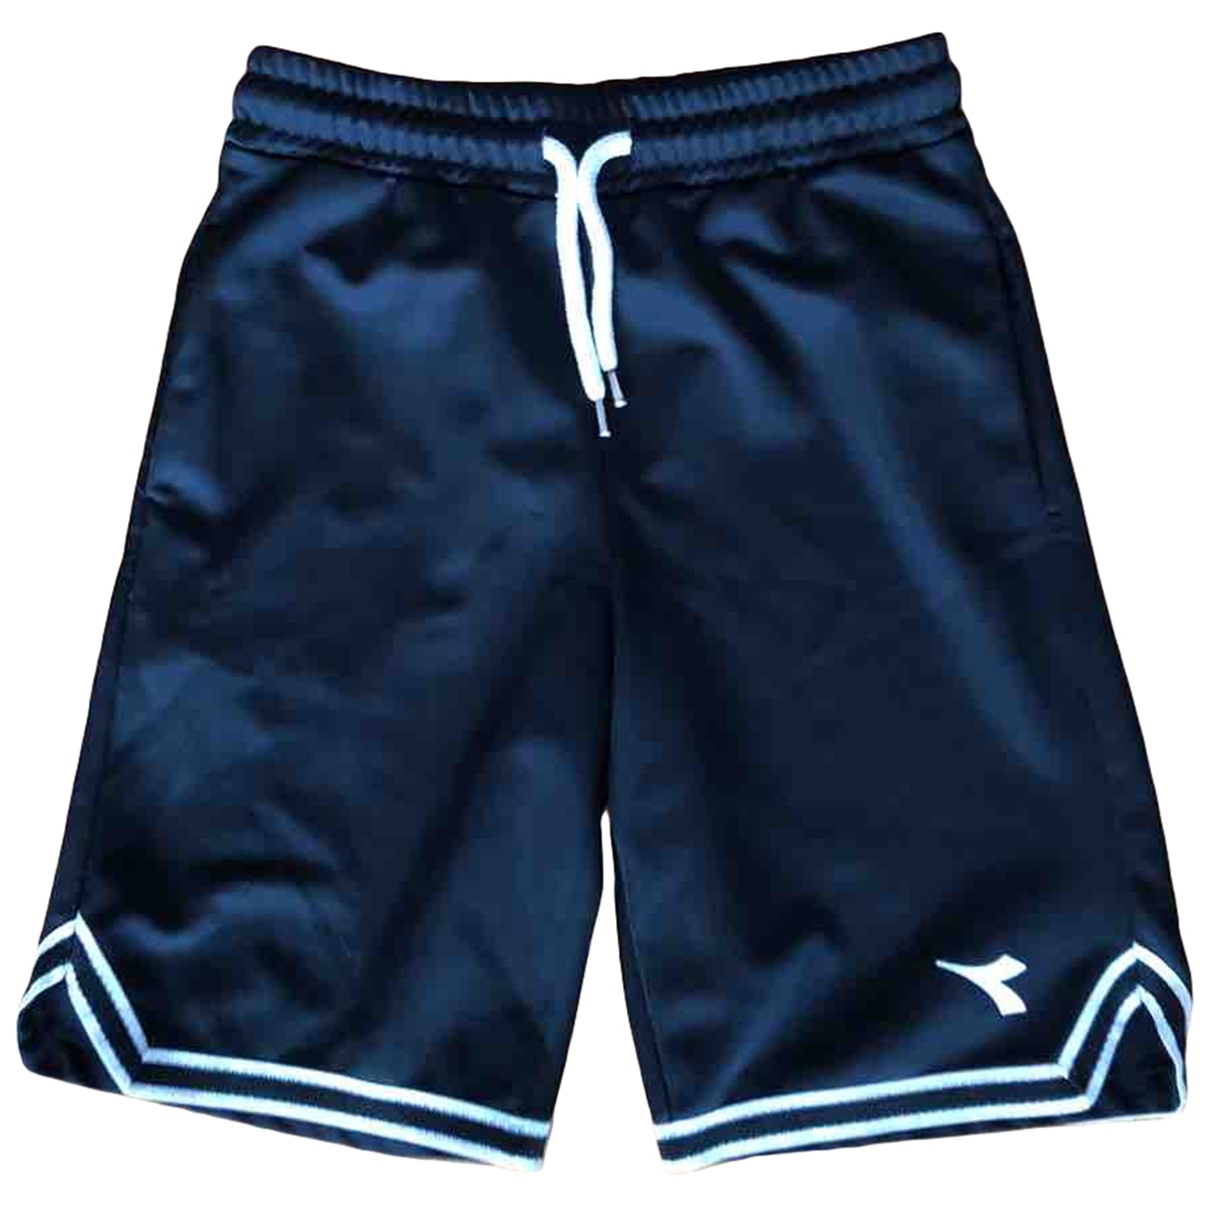 Diadora \N Black Shorts for Kids 10 years - up to 142cm FR